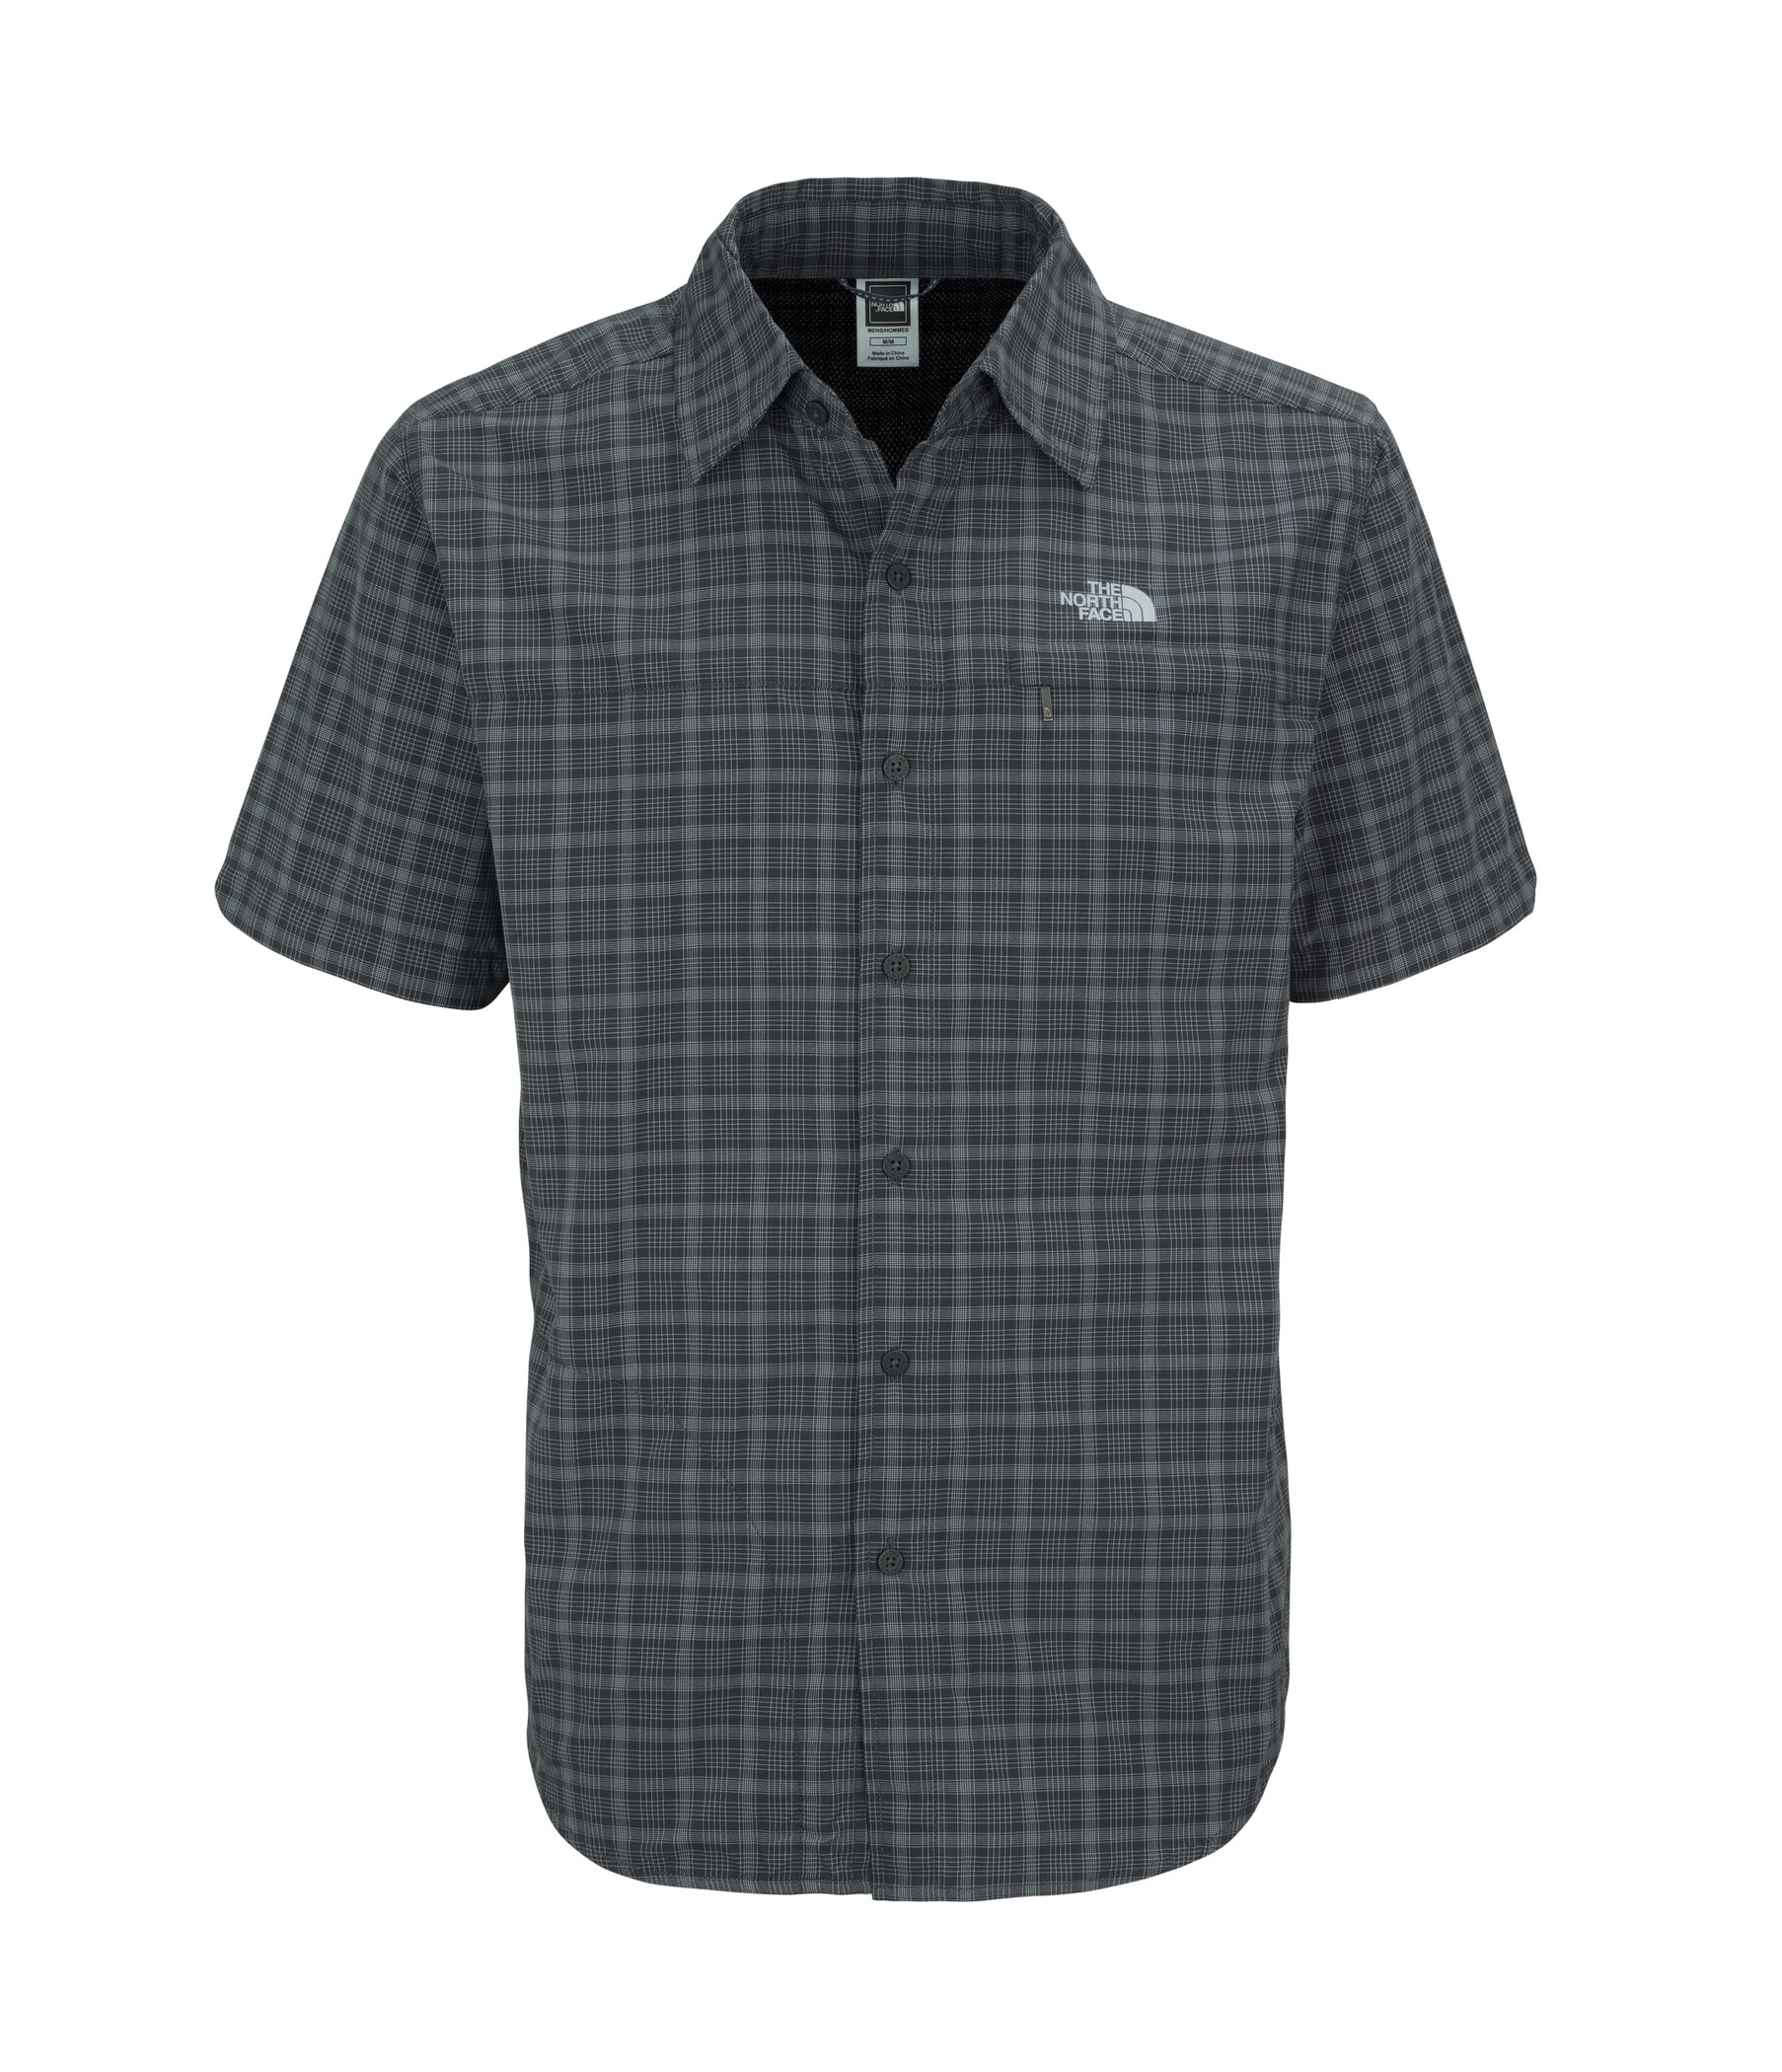 The North Face Men's S/S Ventilation Shirt asphalt grey 2013 S grau Outdoorbekleidung Outdoor Hemd Kurzarm Hemd S